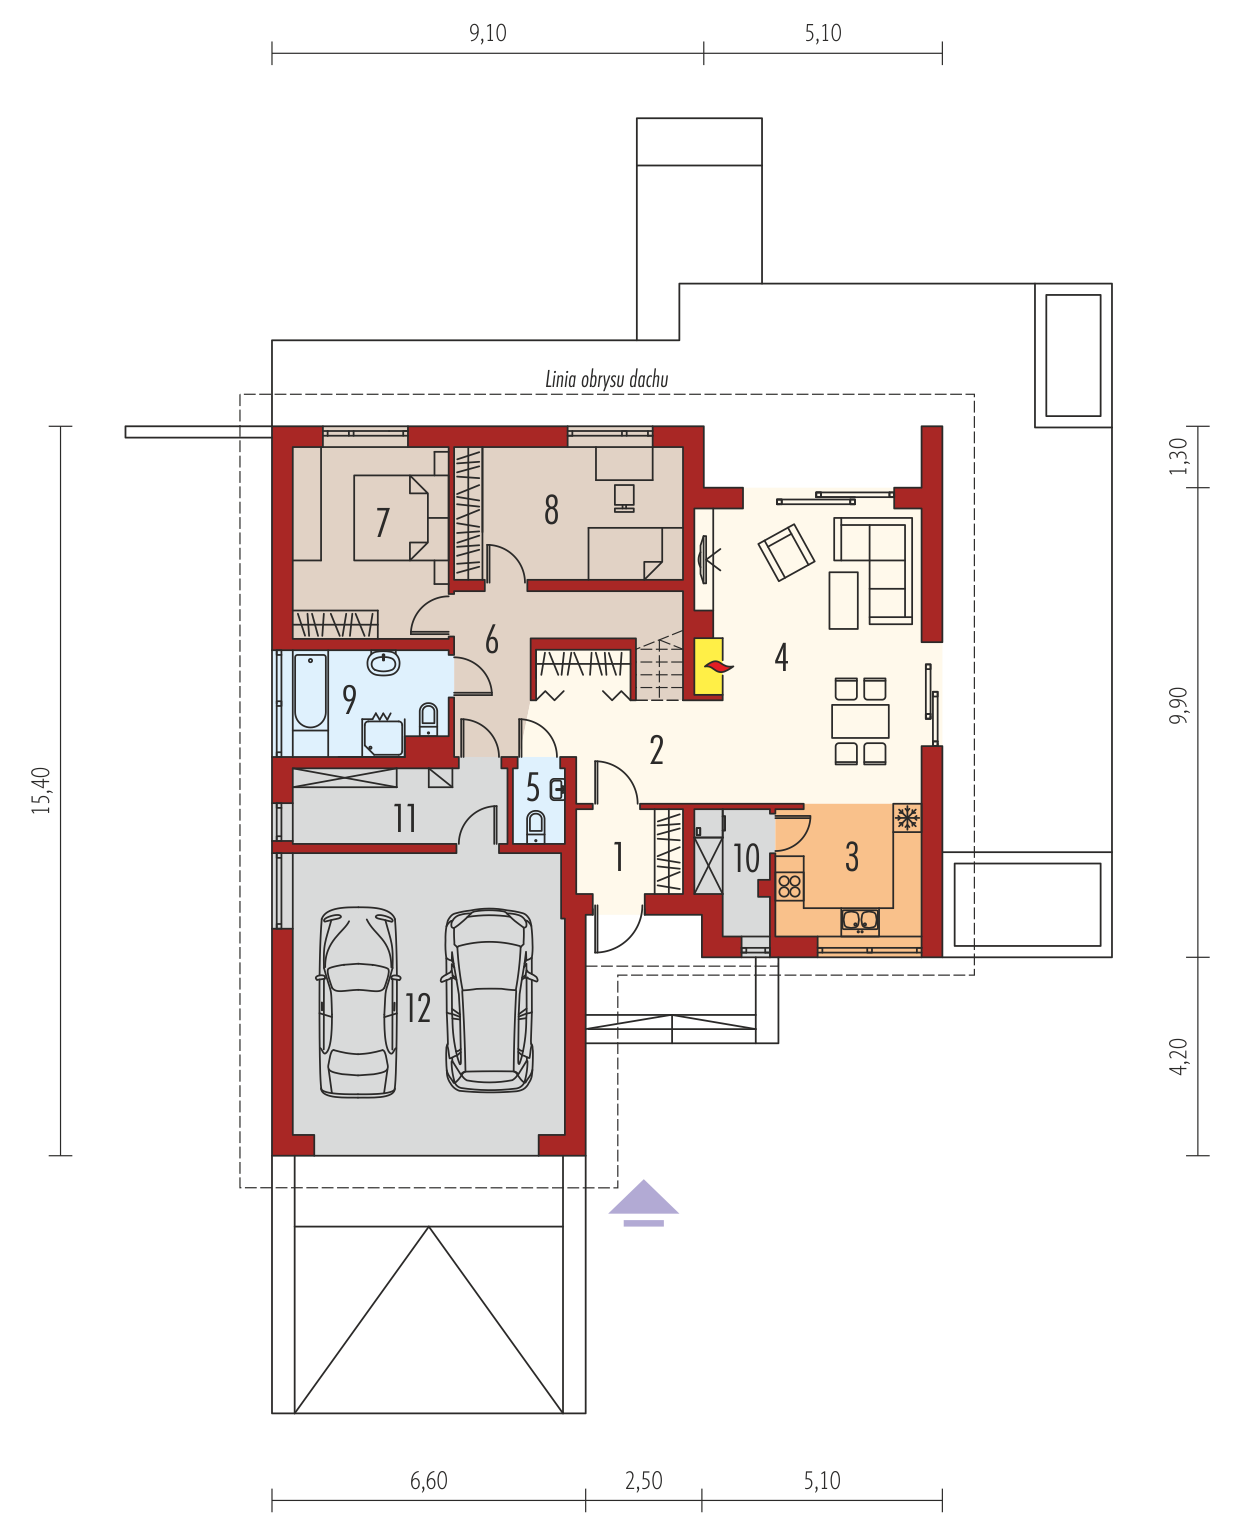 Kitchen Floor Plans With Dimensions 8 X 12 Yptzautc: THOUGHTSKOTO